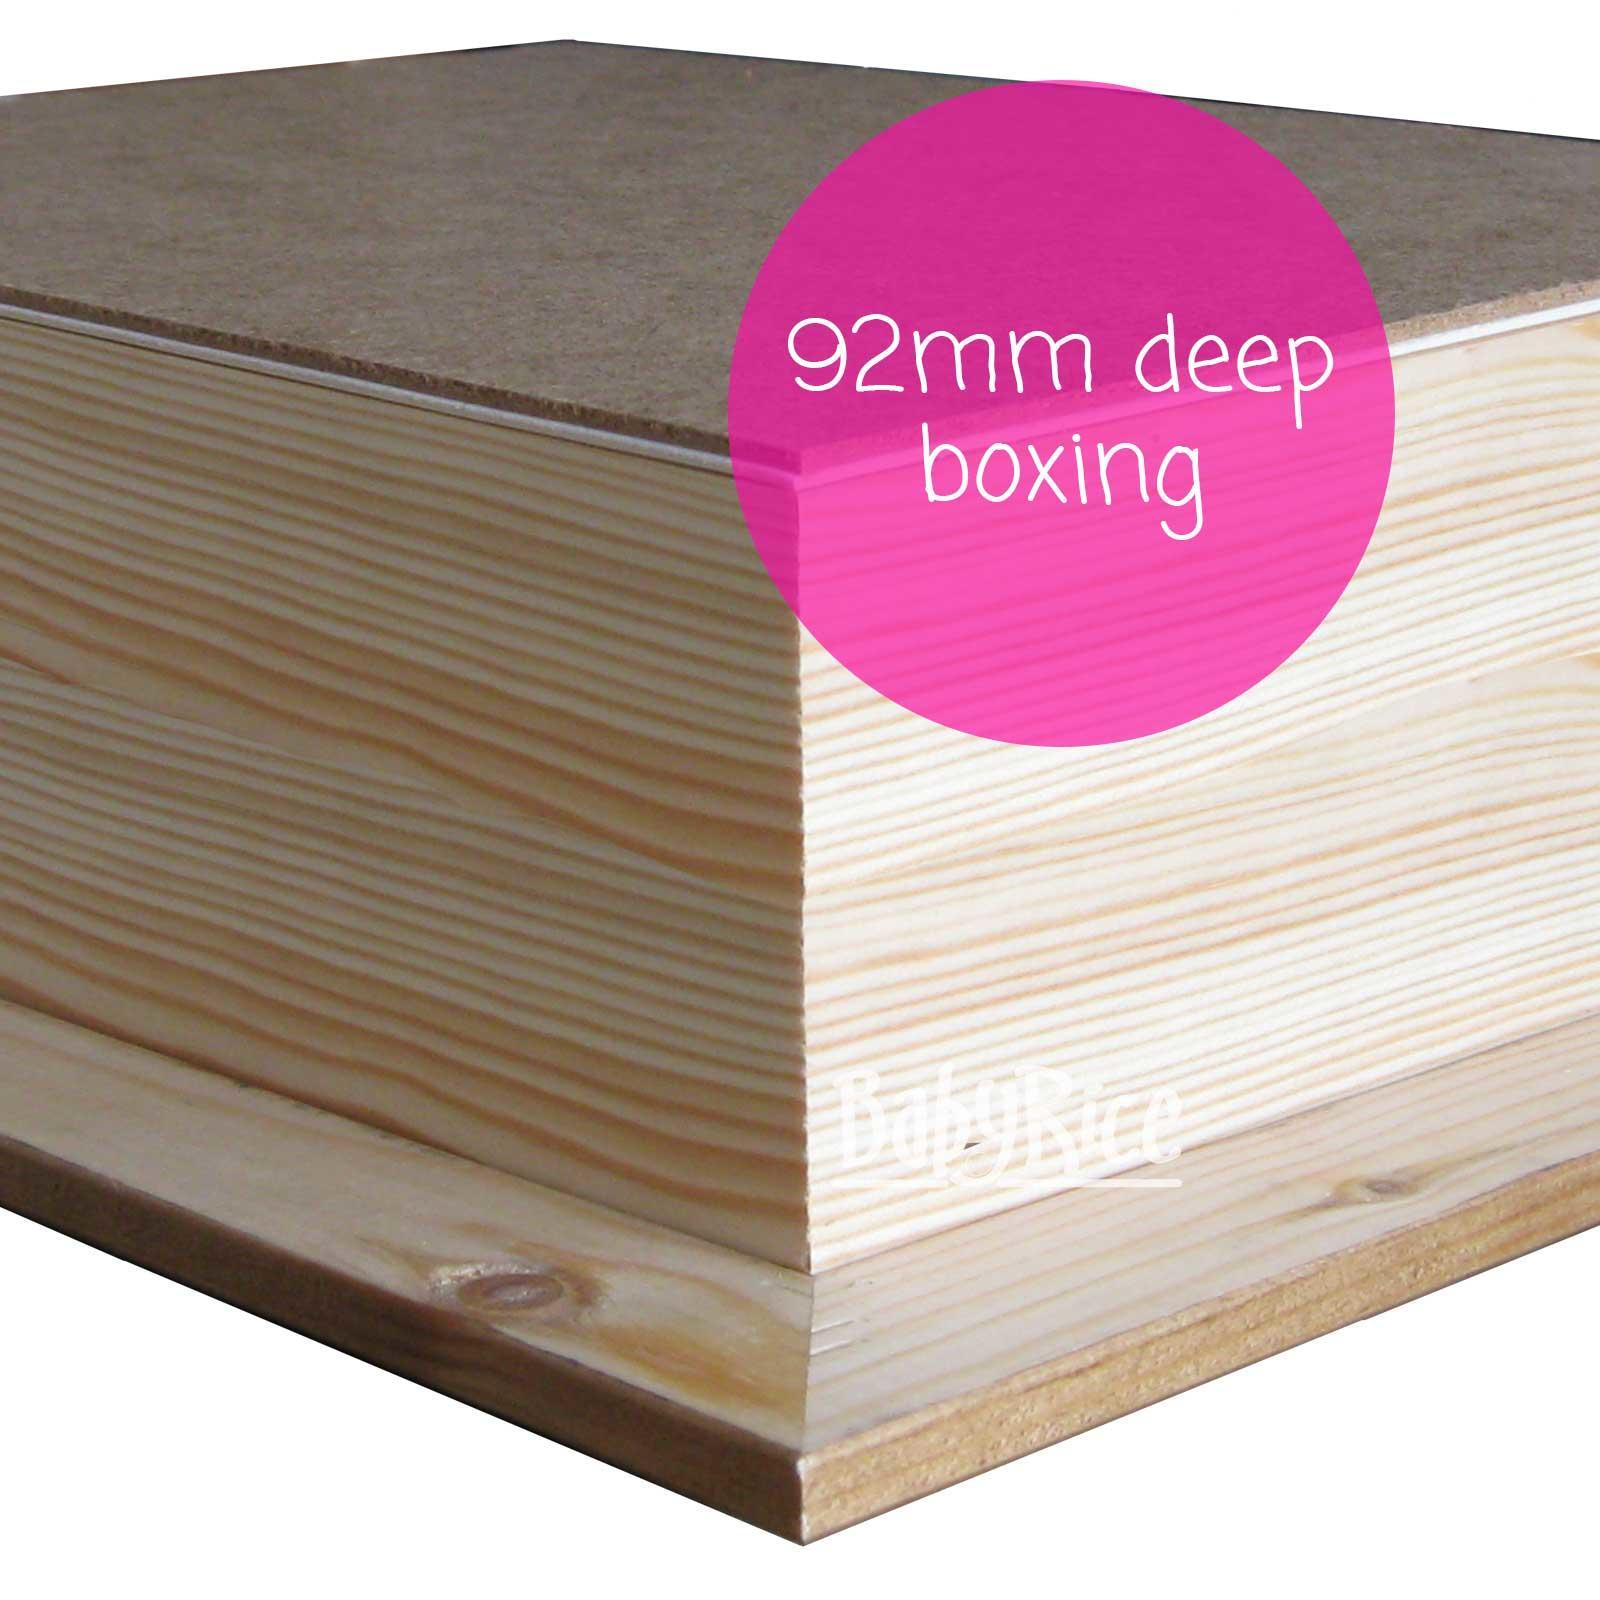 Example of rear pine box 92mm